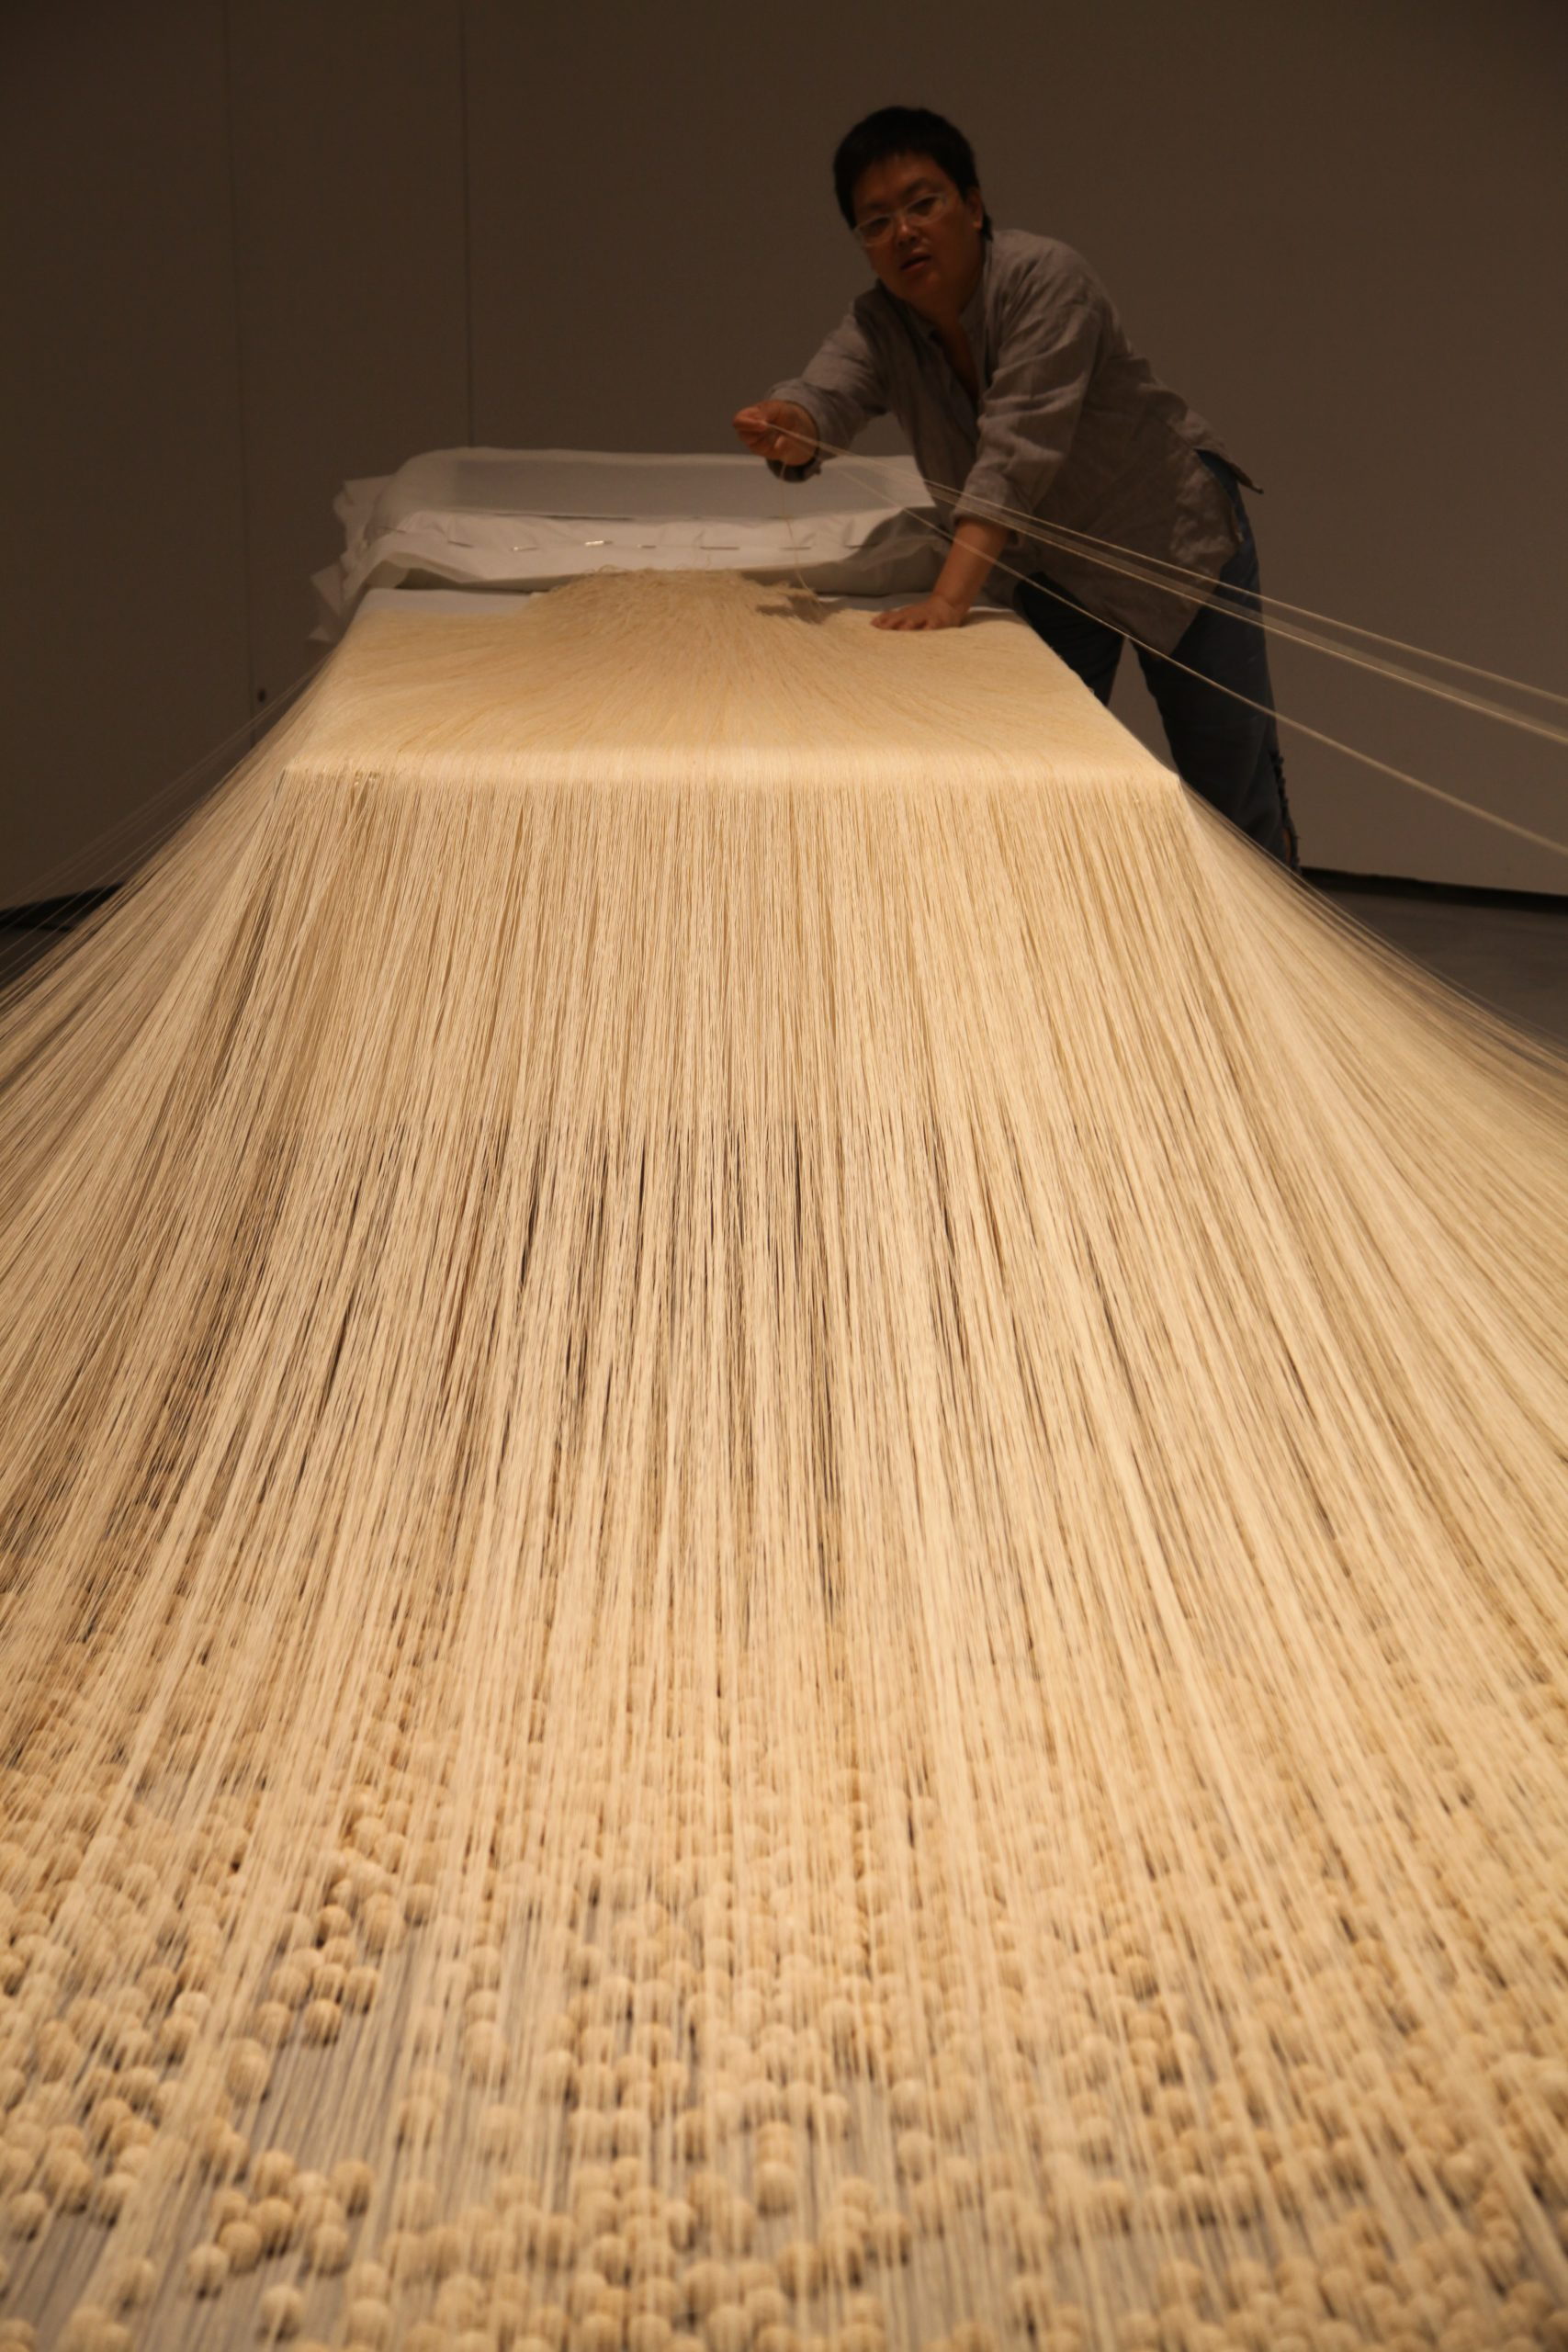 Lin Tianmiao installing The Proliferation of Thread Winding (1995) for the exhibition The Civil Power, Minsheng Art Museum, 2015. Photo courtesy of the artist.